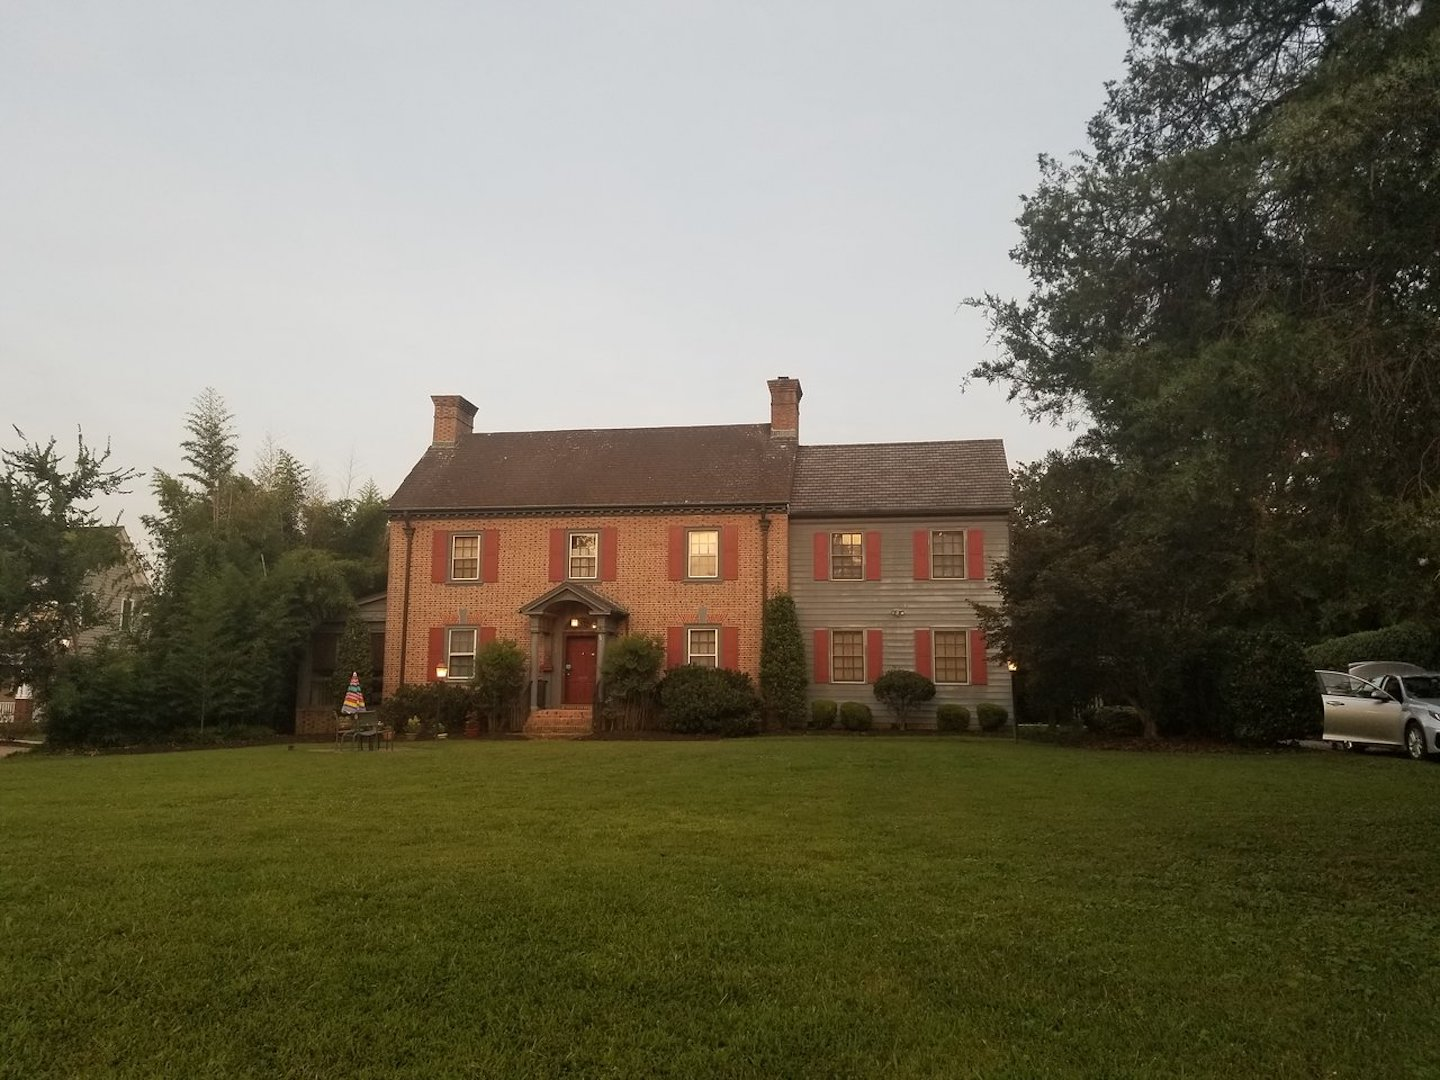 A large brick building with grass in front of a house at Governor's Trace B&B.